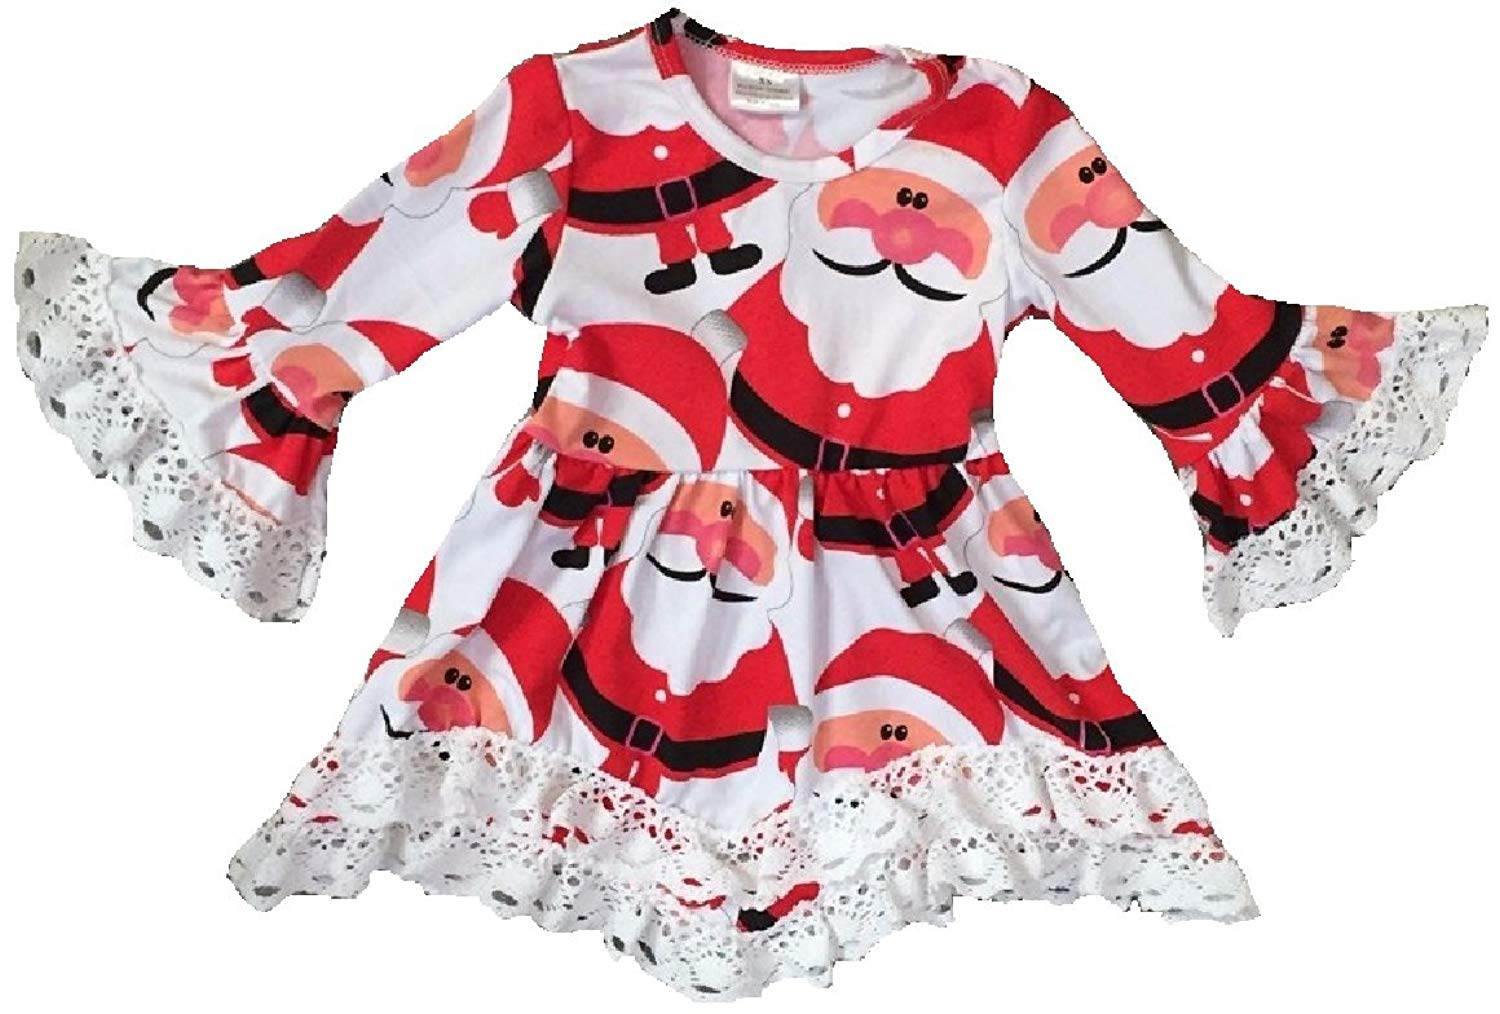 442caca77476 Get Quotations · BluNight Collection Little Girl Dress Kids Christmas Santa  Claus Lace Ruffle Cotton Girl Dress 2-